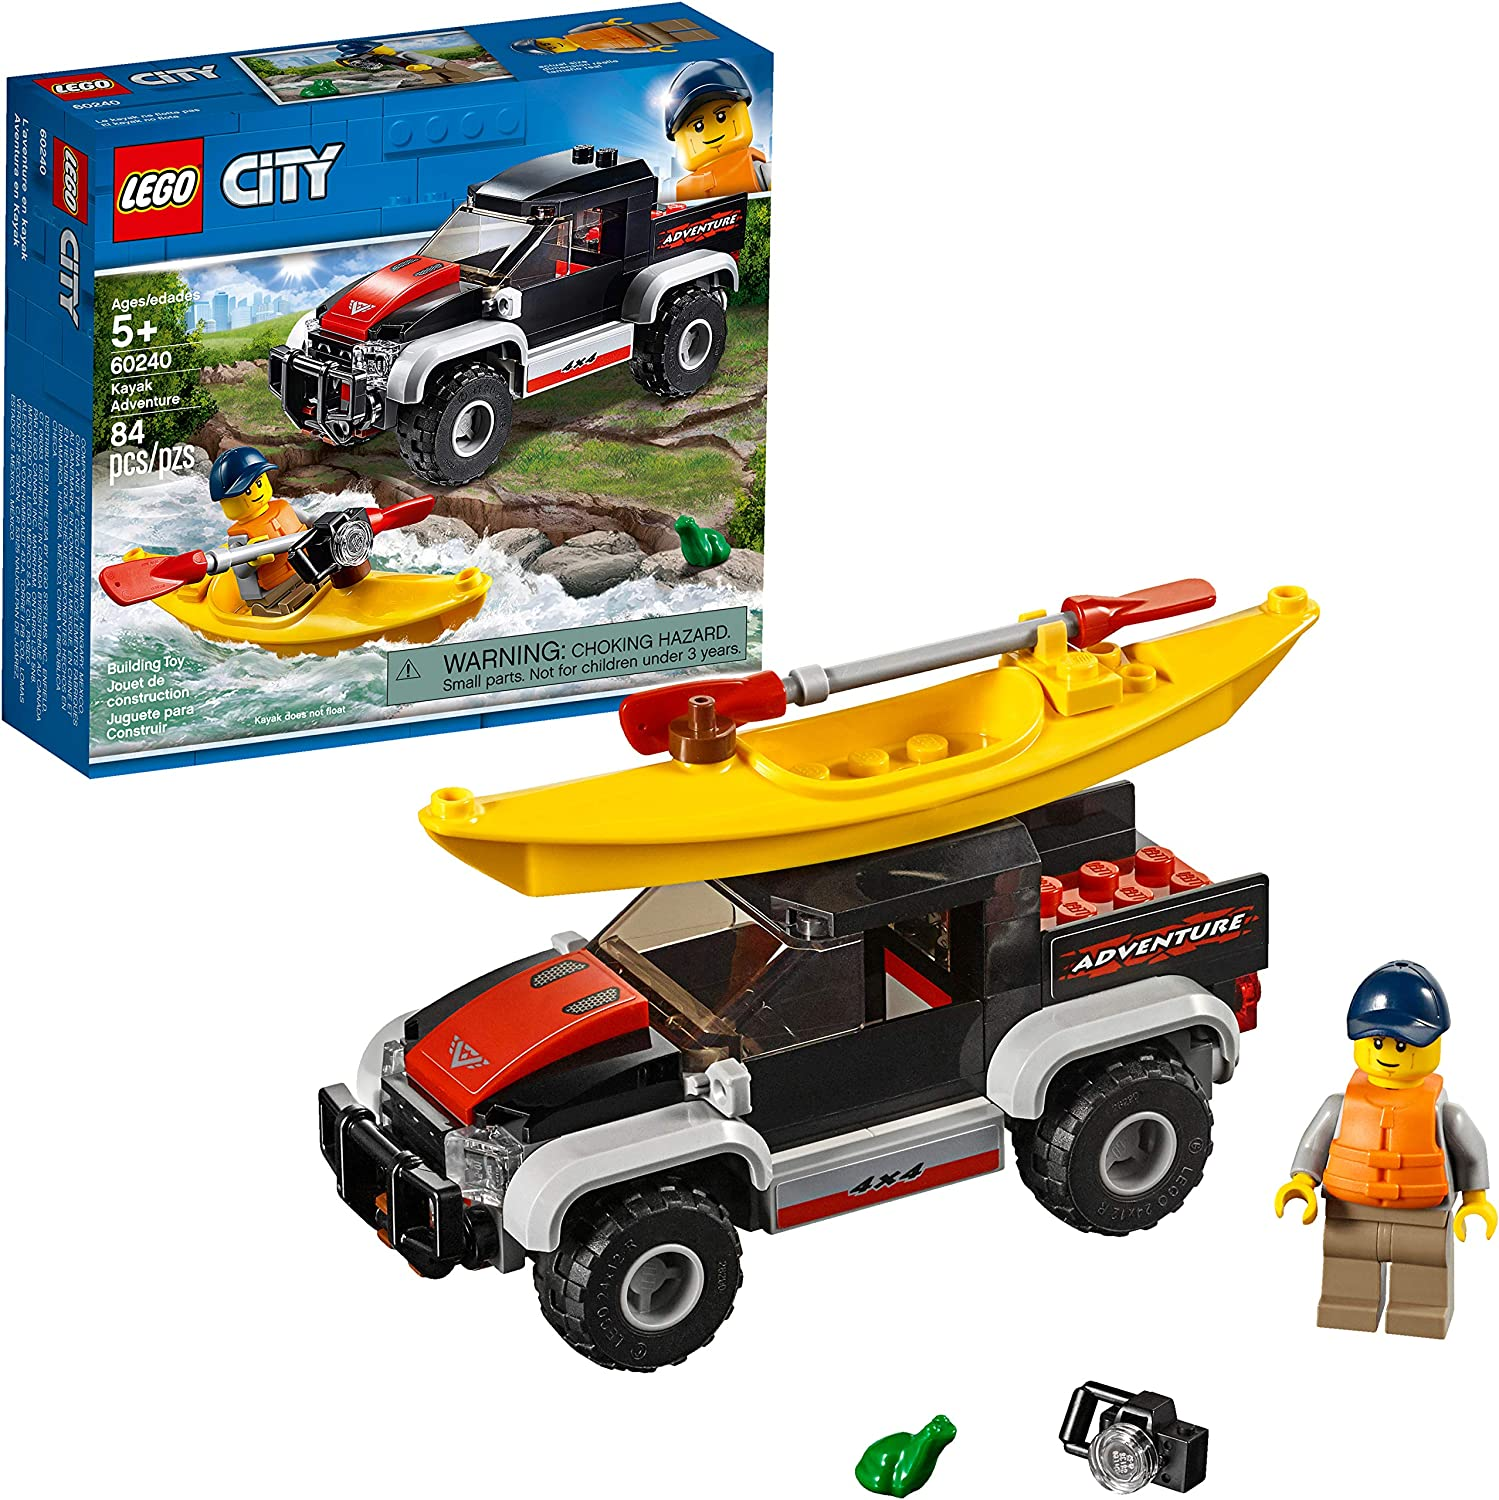 LEGO City Great Vehicles Kayak Adventure 60240 Building Kit (84 Pieces)